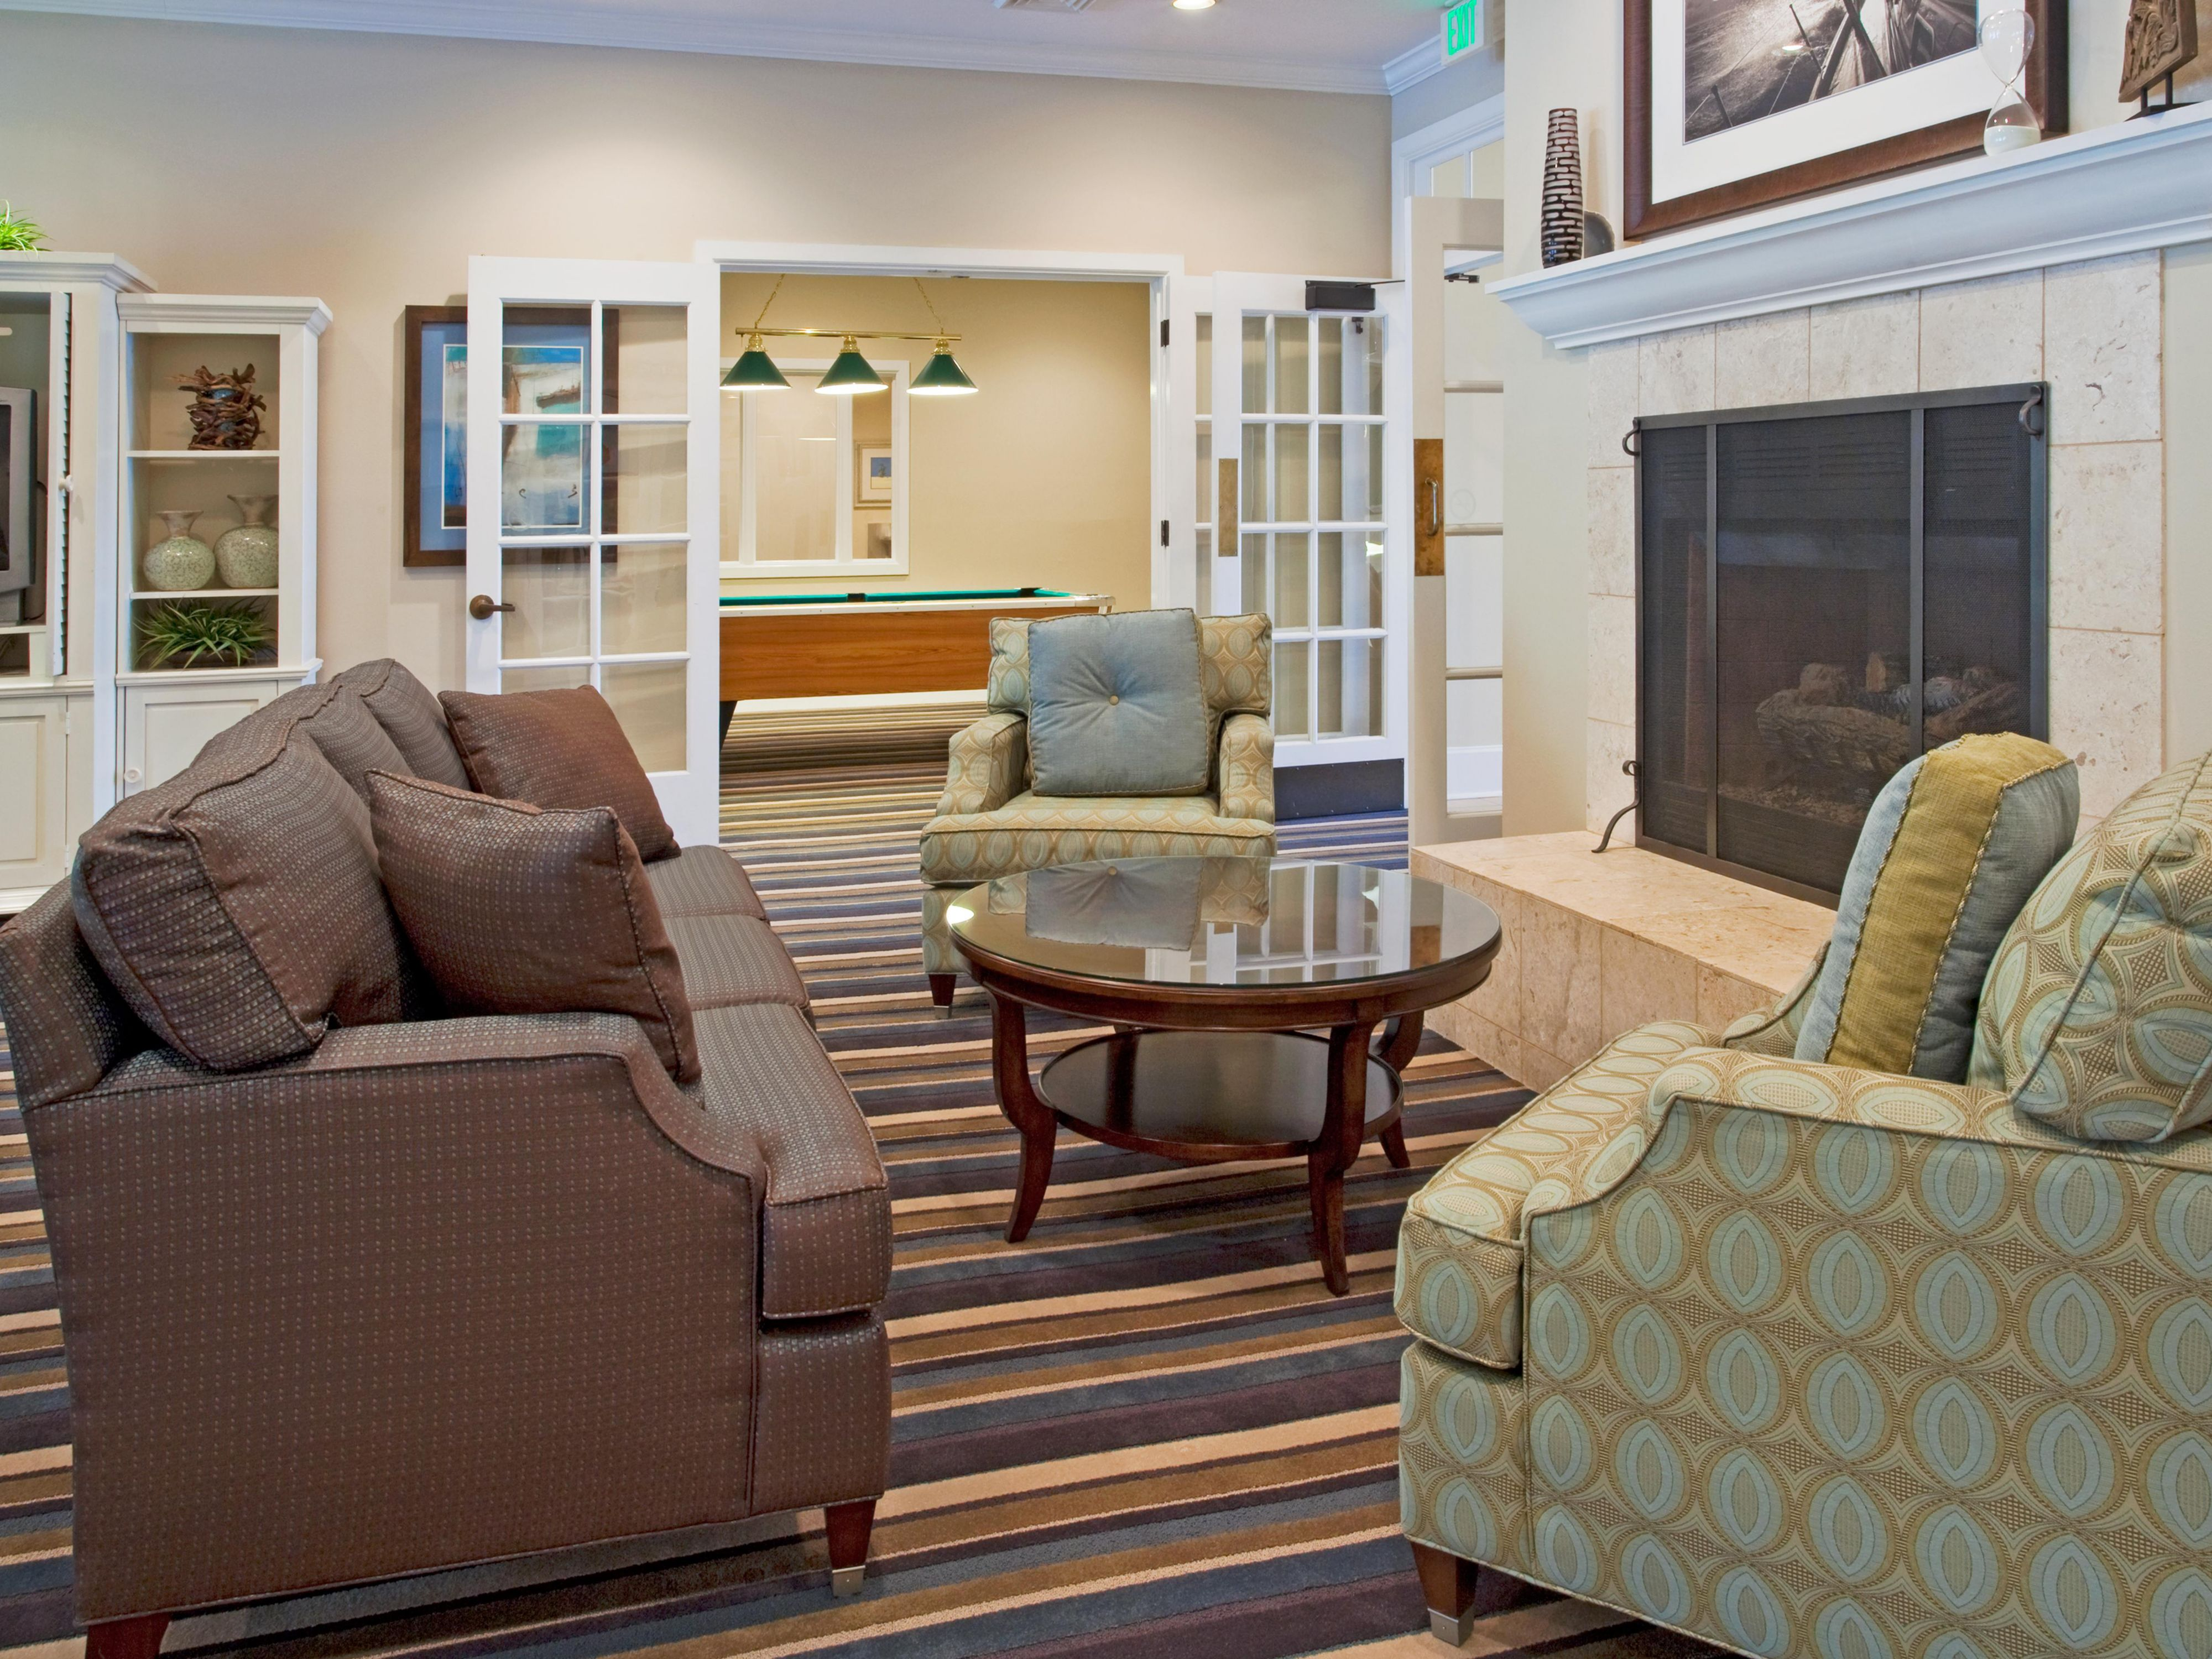 Lobby lounge where guests can relax and enjoy during their stay